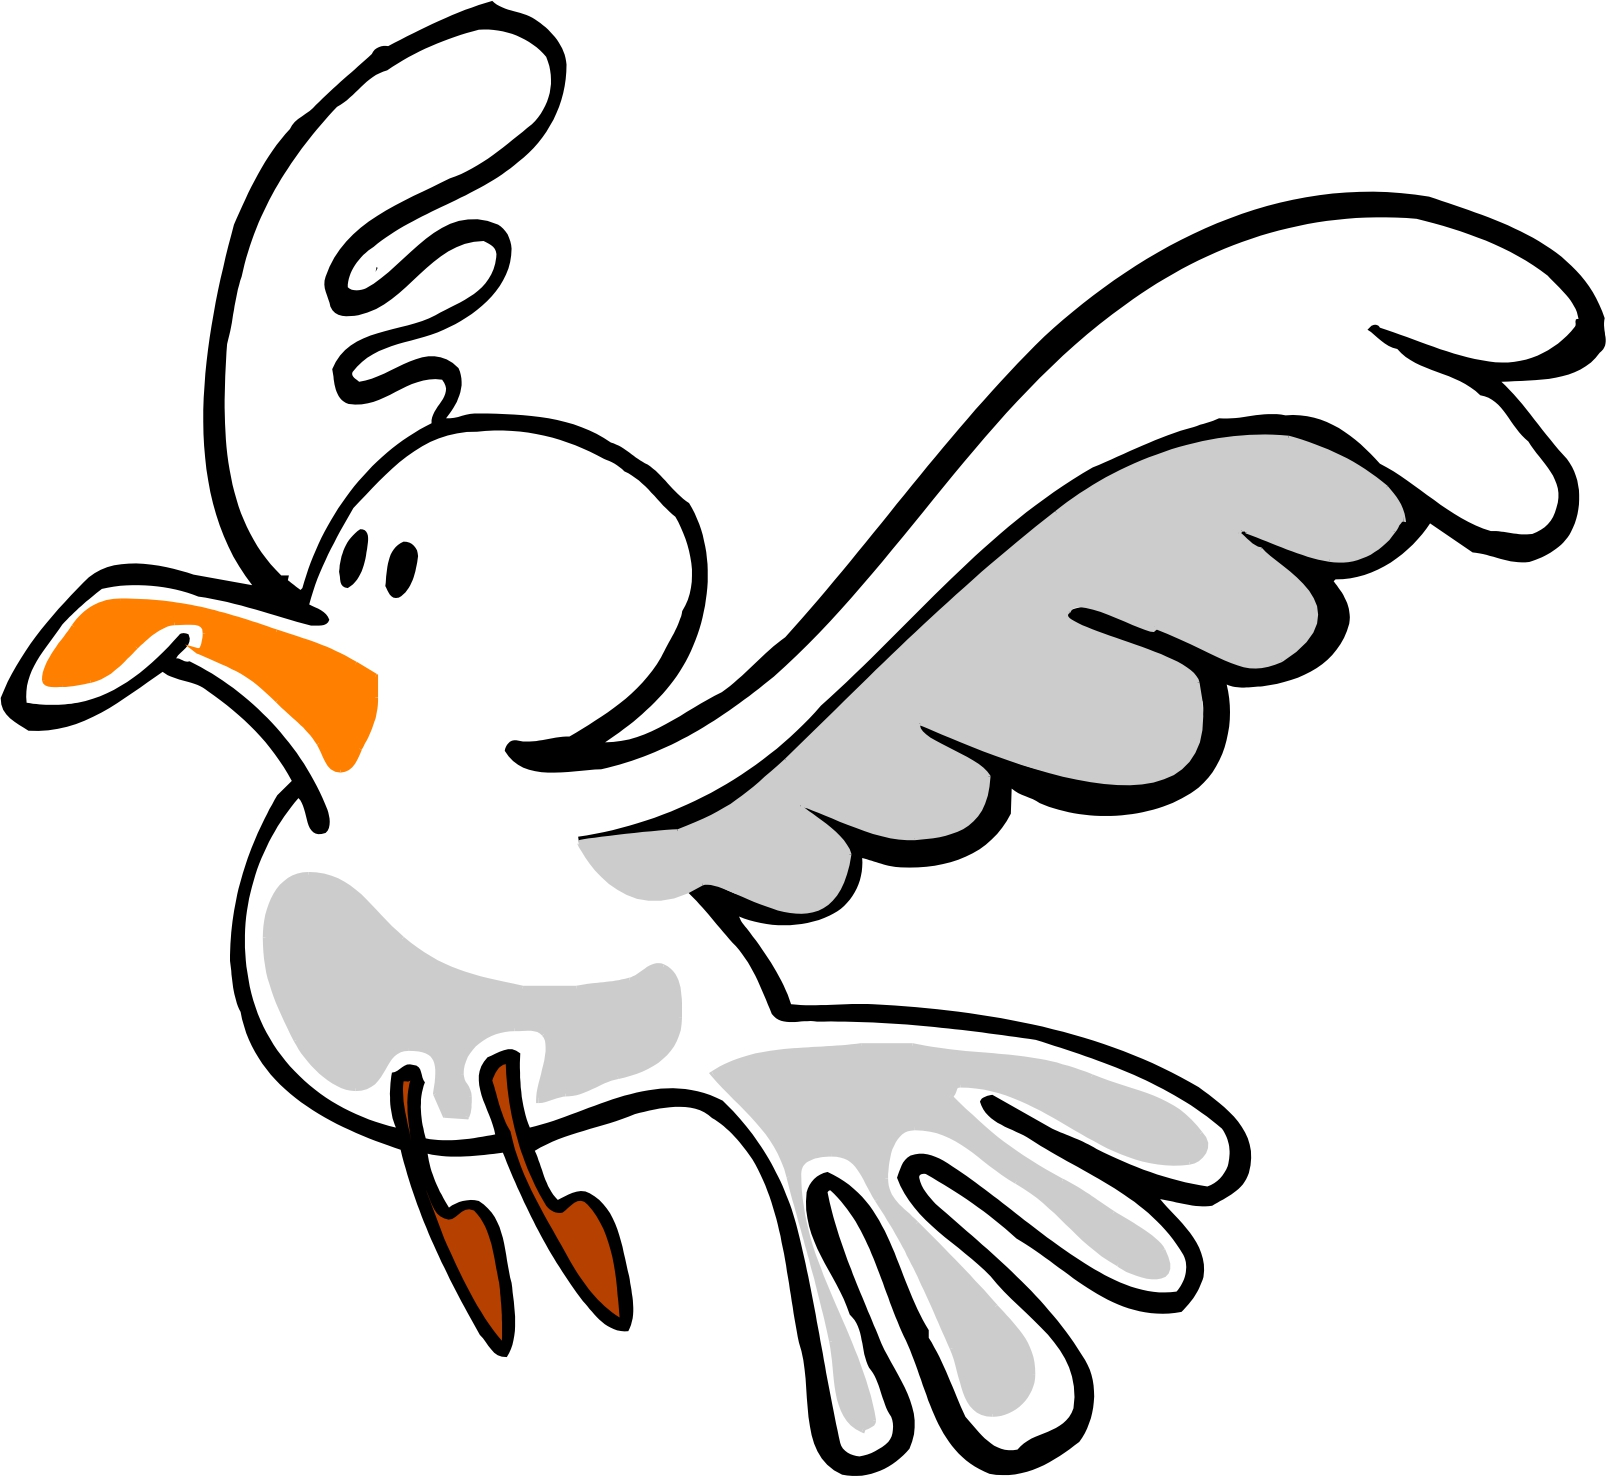 Seagull clipart #12, Download drawings